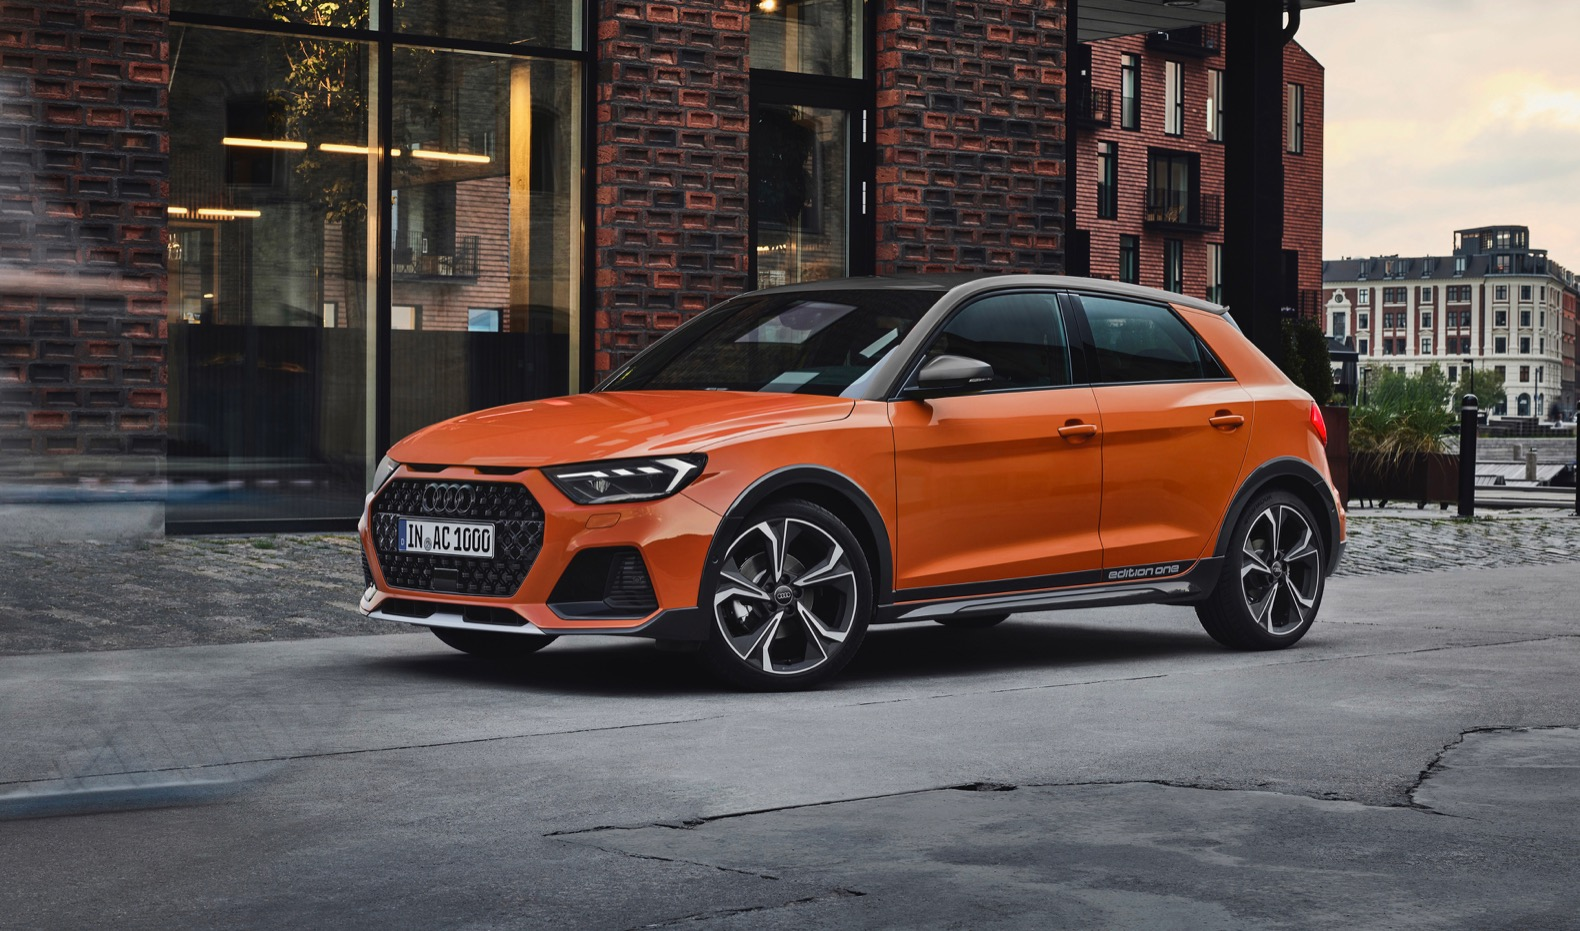 2020 Audi A1 Citycarver Is Ready For The City